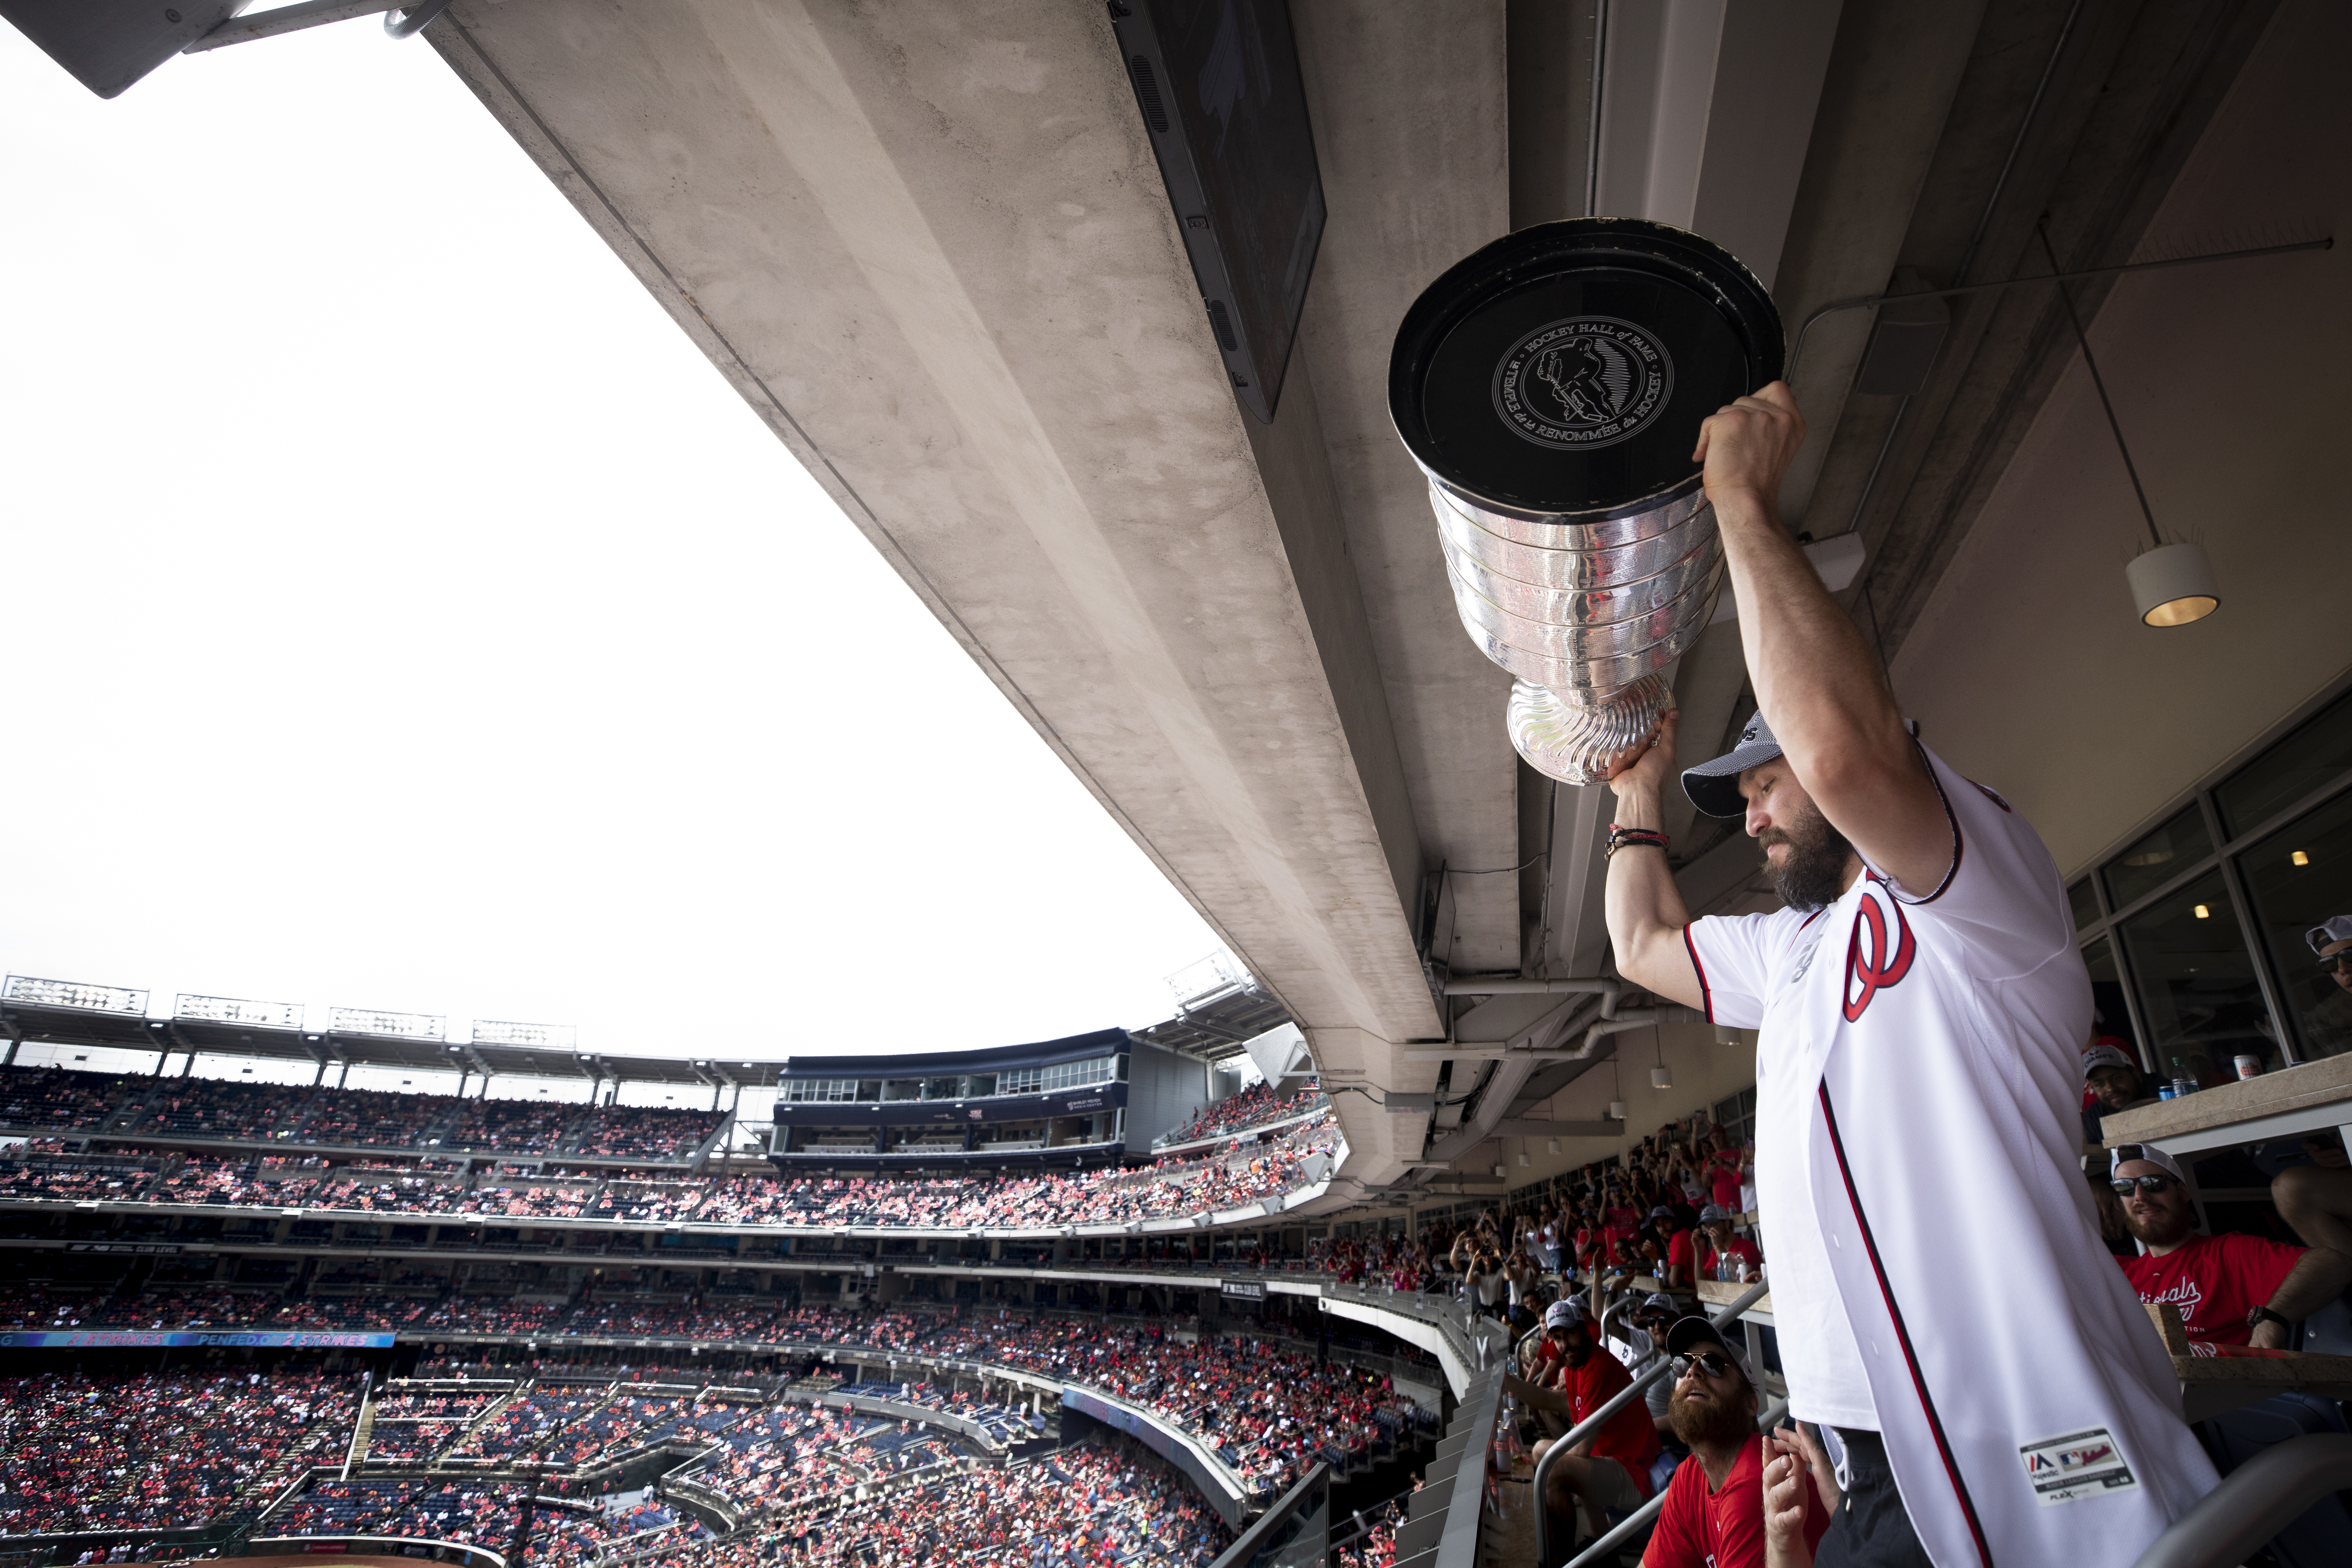 Two days after their Stanley Cup win, Alex Ovechkin and the Capitals brought Lord Stanley to the Nationals home game. To honor the Caps, the Nats asked Ovechkin to throw out the ceremonial first pitch ... twice! After the first attempt sailed over Max Scherzer's head, Ovechkin asked for a redo. The Caps hoisted the Cup up high several times in their suite throughout the game and indulged fan requests for a few photos. The celebrations continued later that day with the Caps diving in the Georgetown waterfront fountain, and Ovechkin doing a Keg Stand with the Cup! (Image: Patrick McDermott for the Washington Capitals)<br>